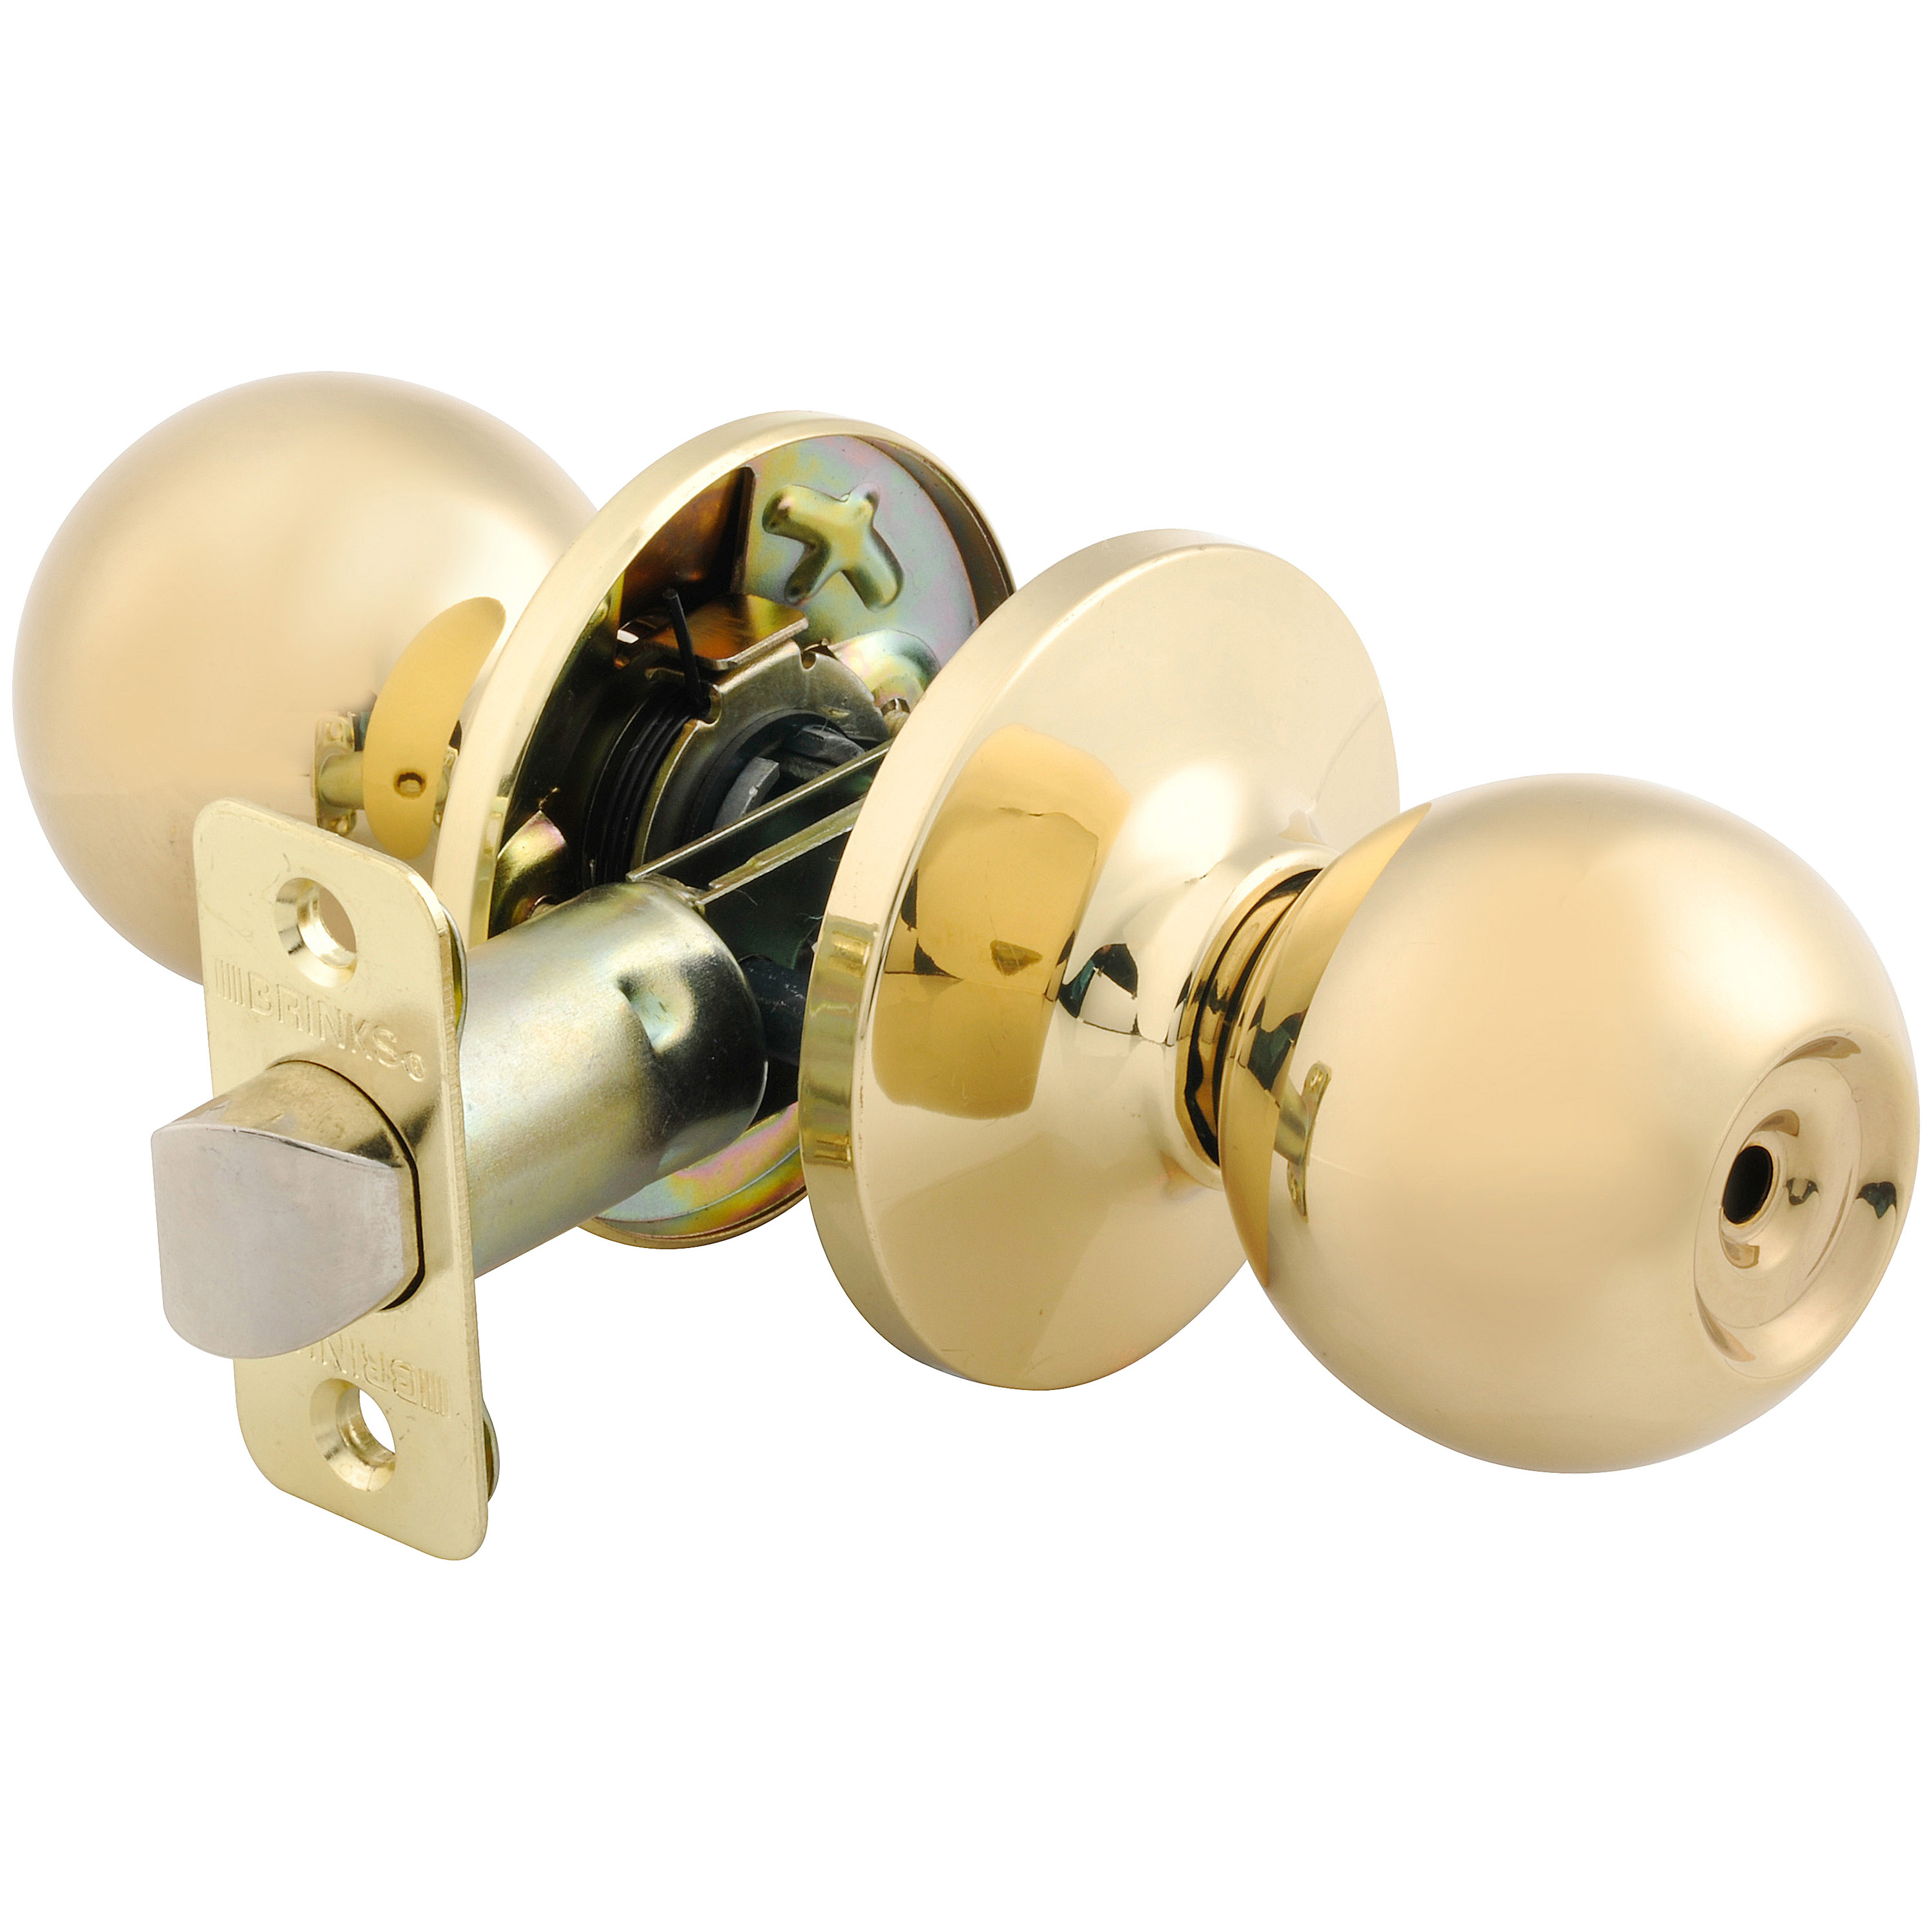 Brink's Bed and Bathroom Privacy Tulip Style Door Knob Lock, Polished Brass